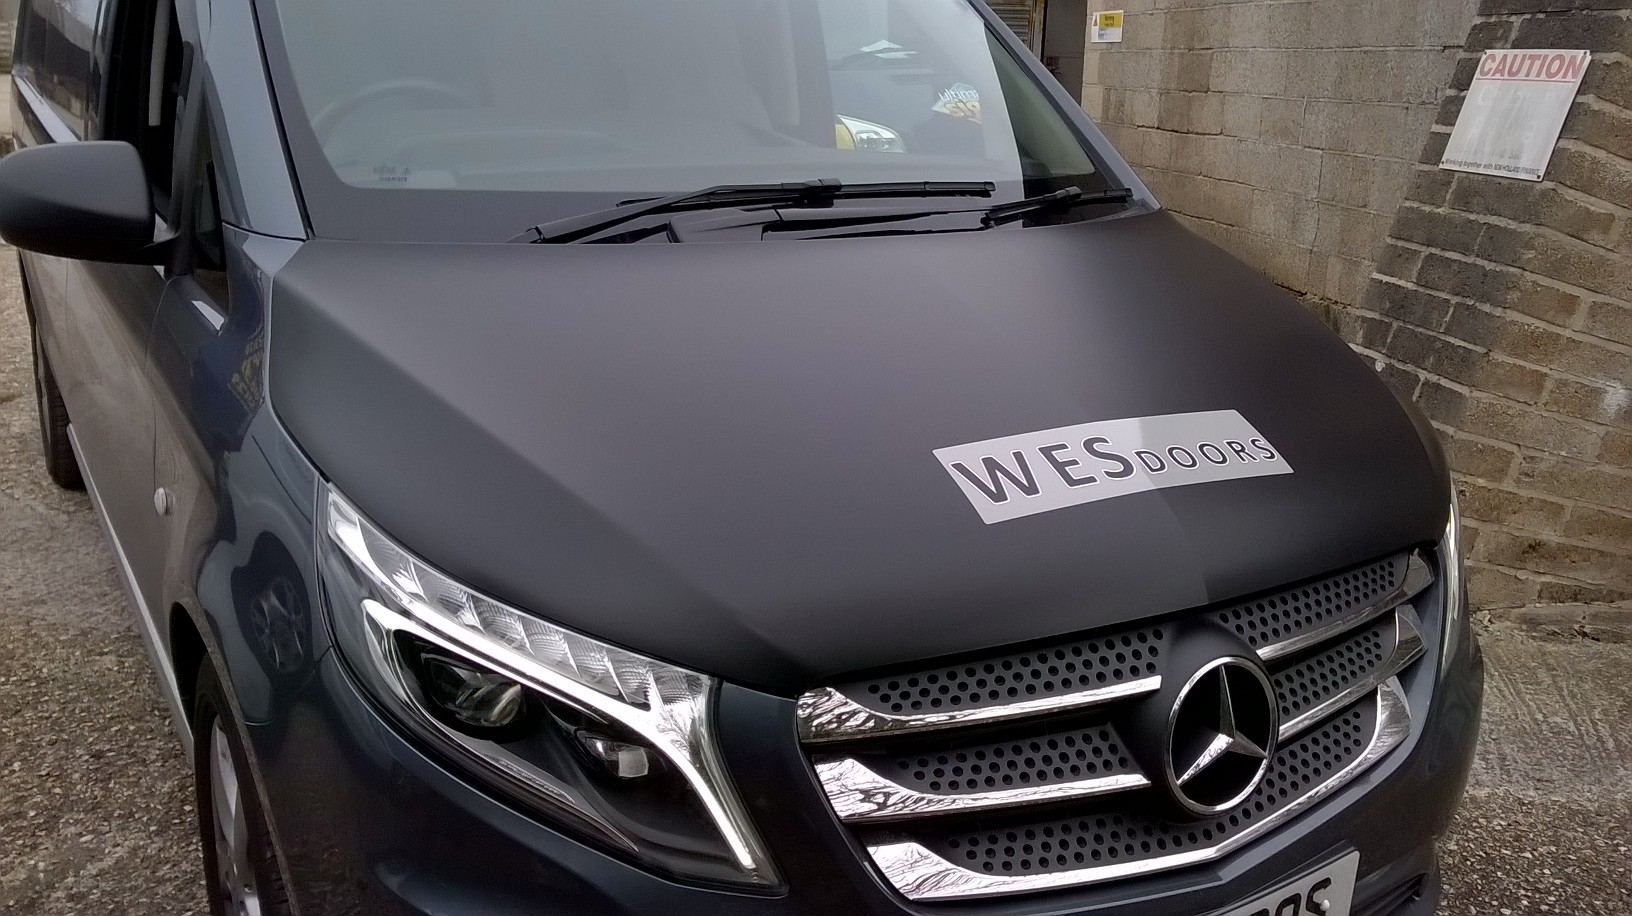 VEHICLE GRAPHICS FOR WESDOORS